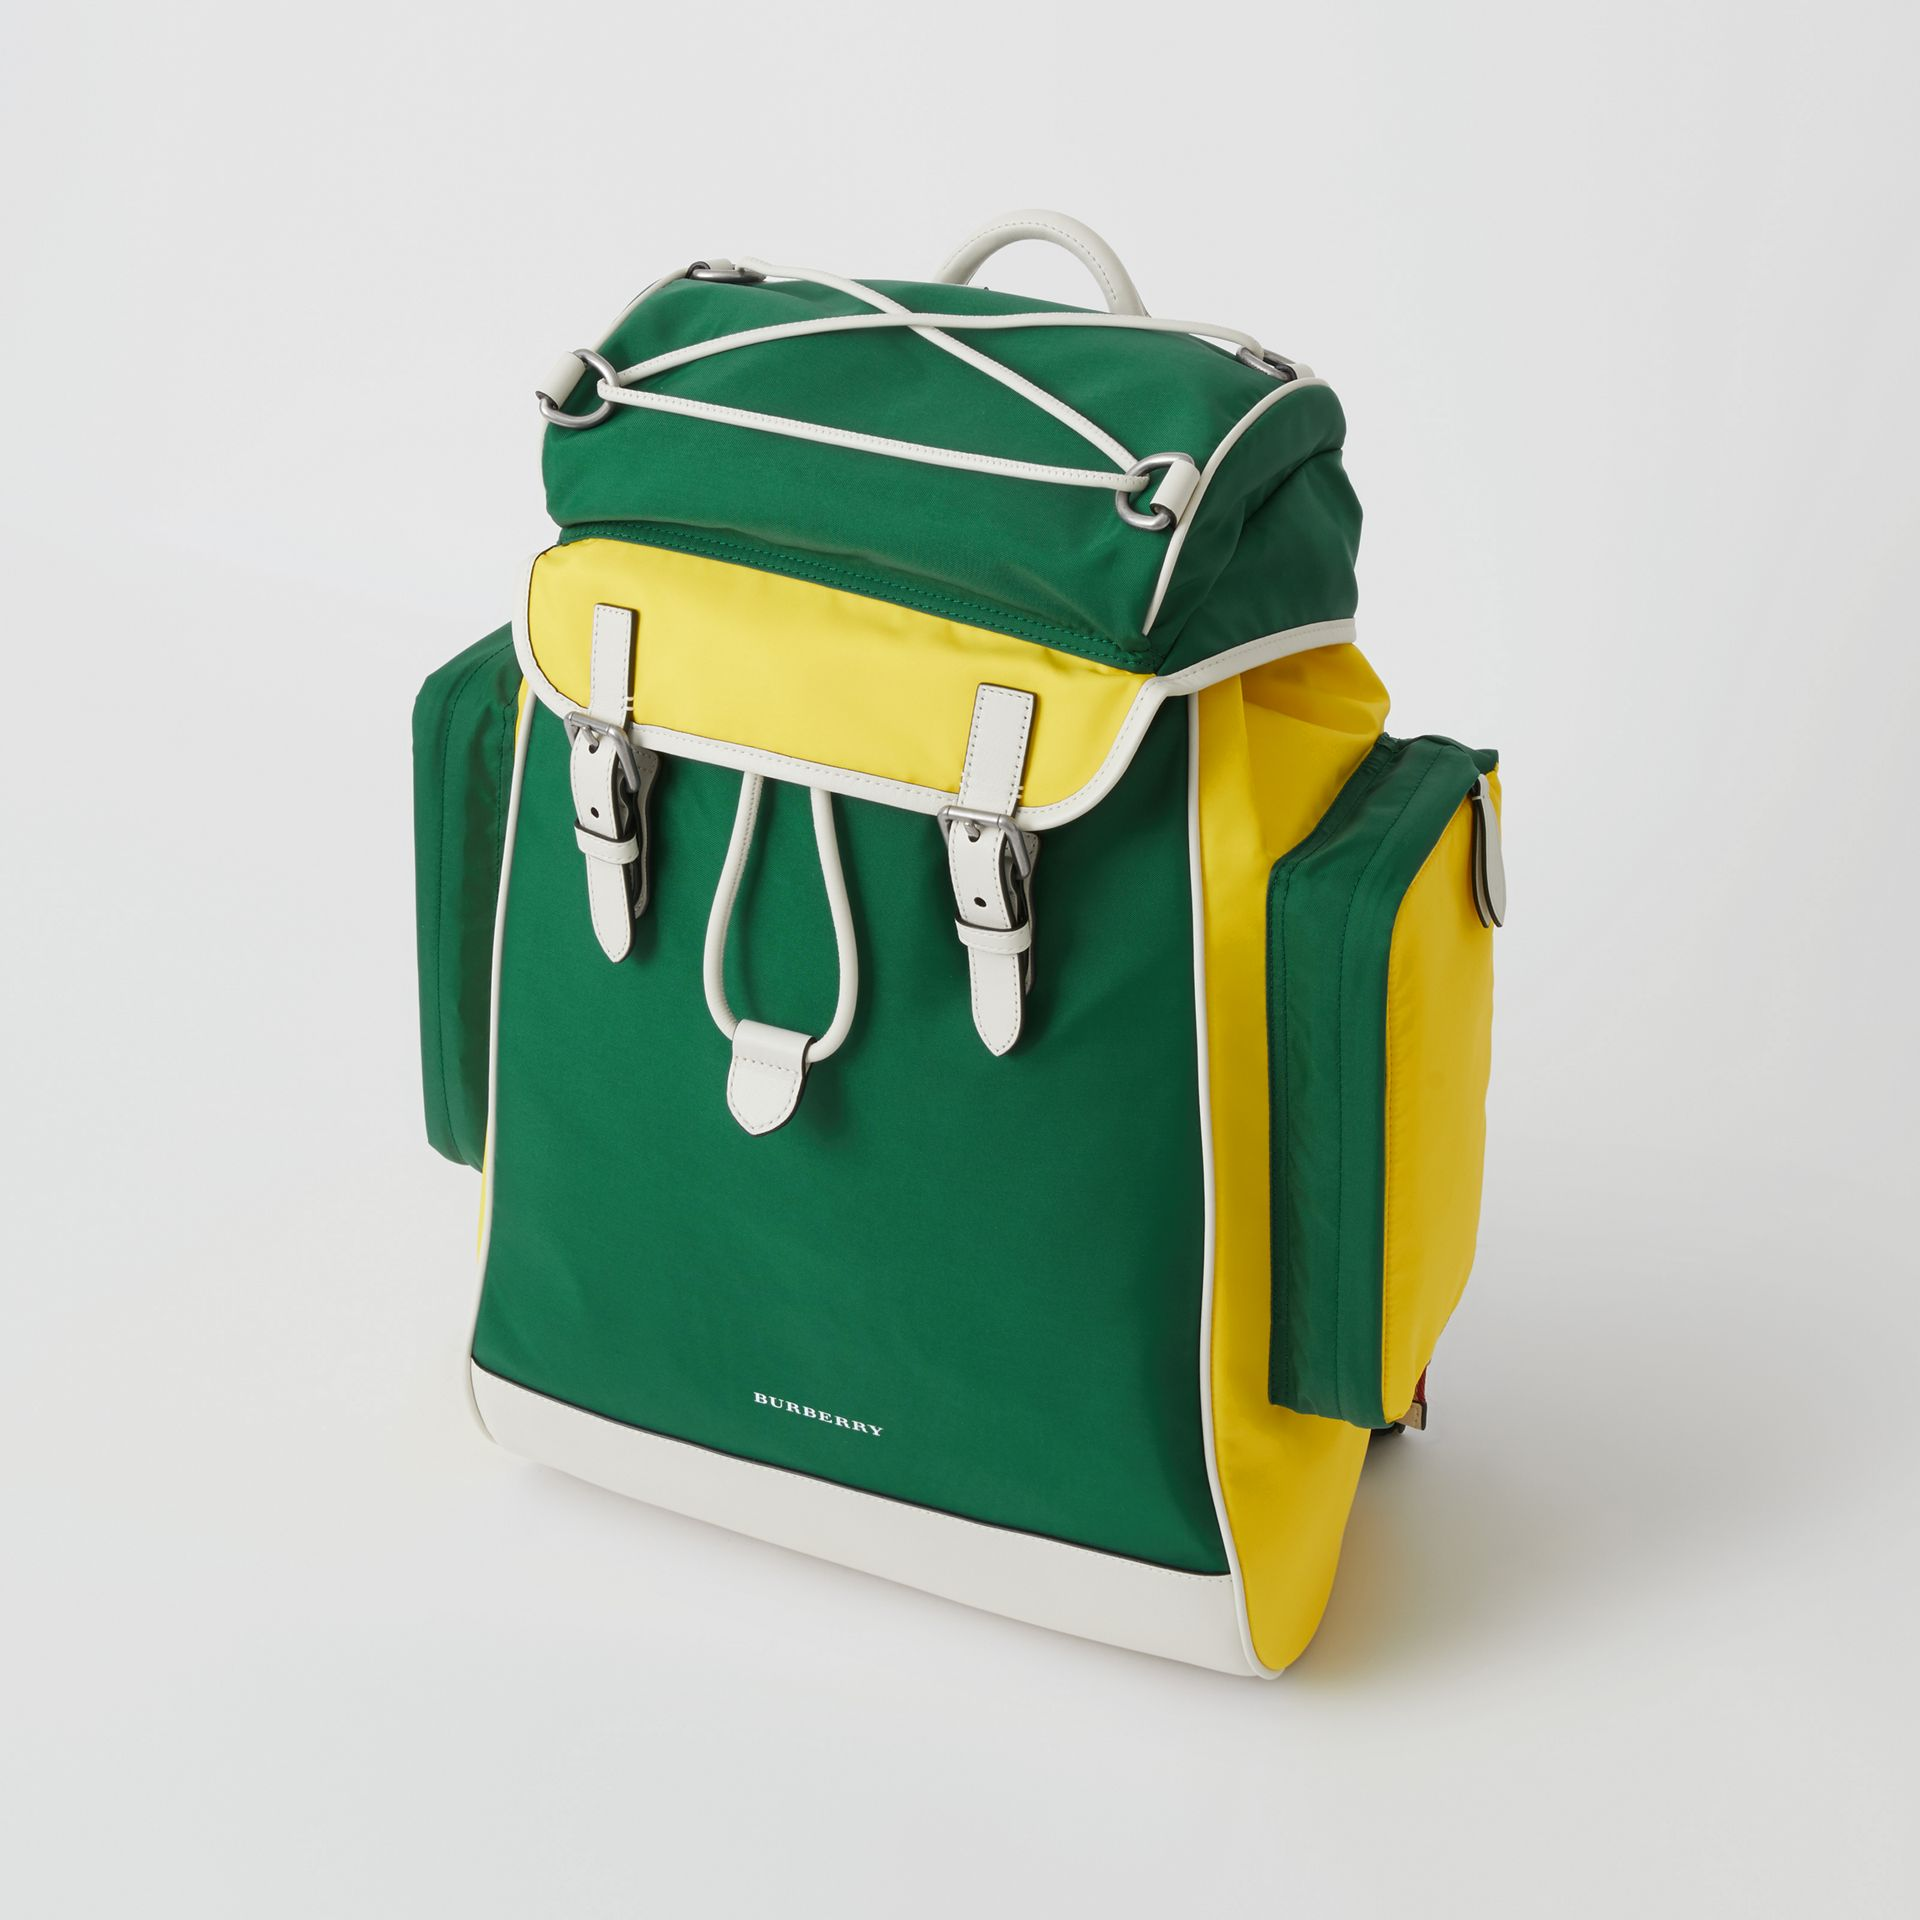 Tri-tone Nylon and Leather Backpack in Pine Green - Men | Burberry Canada - gallery image 2